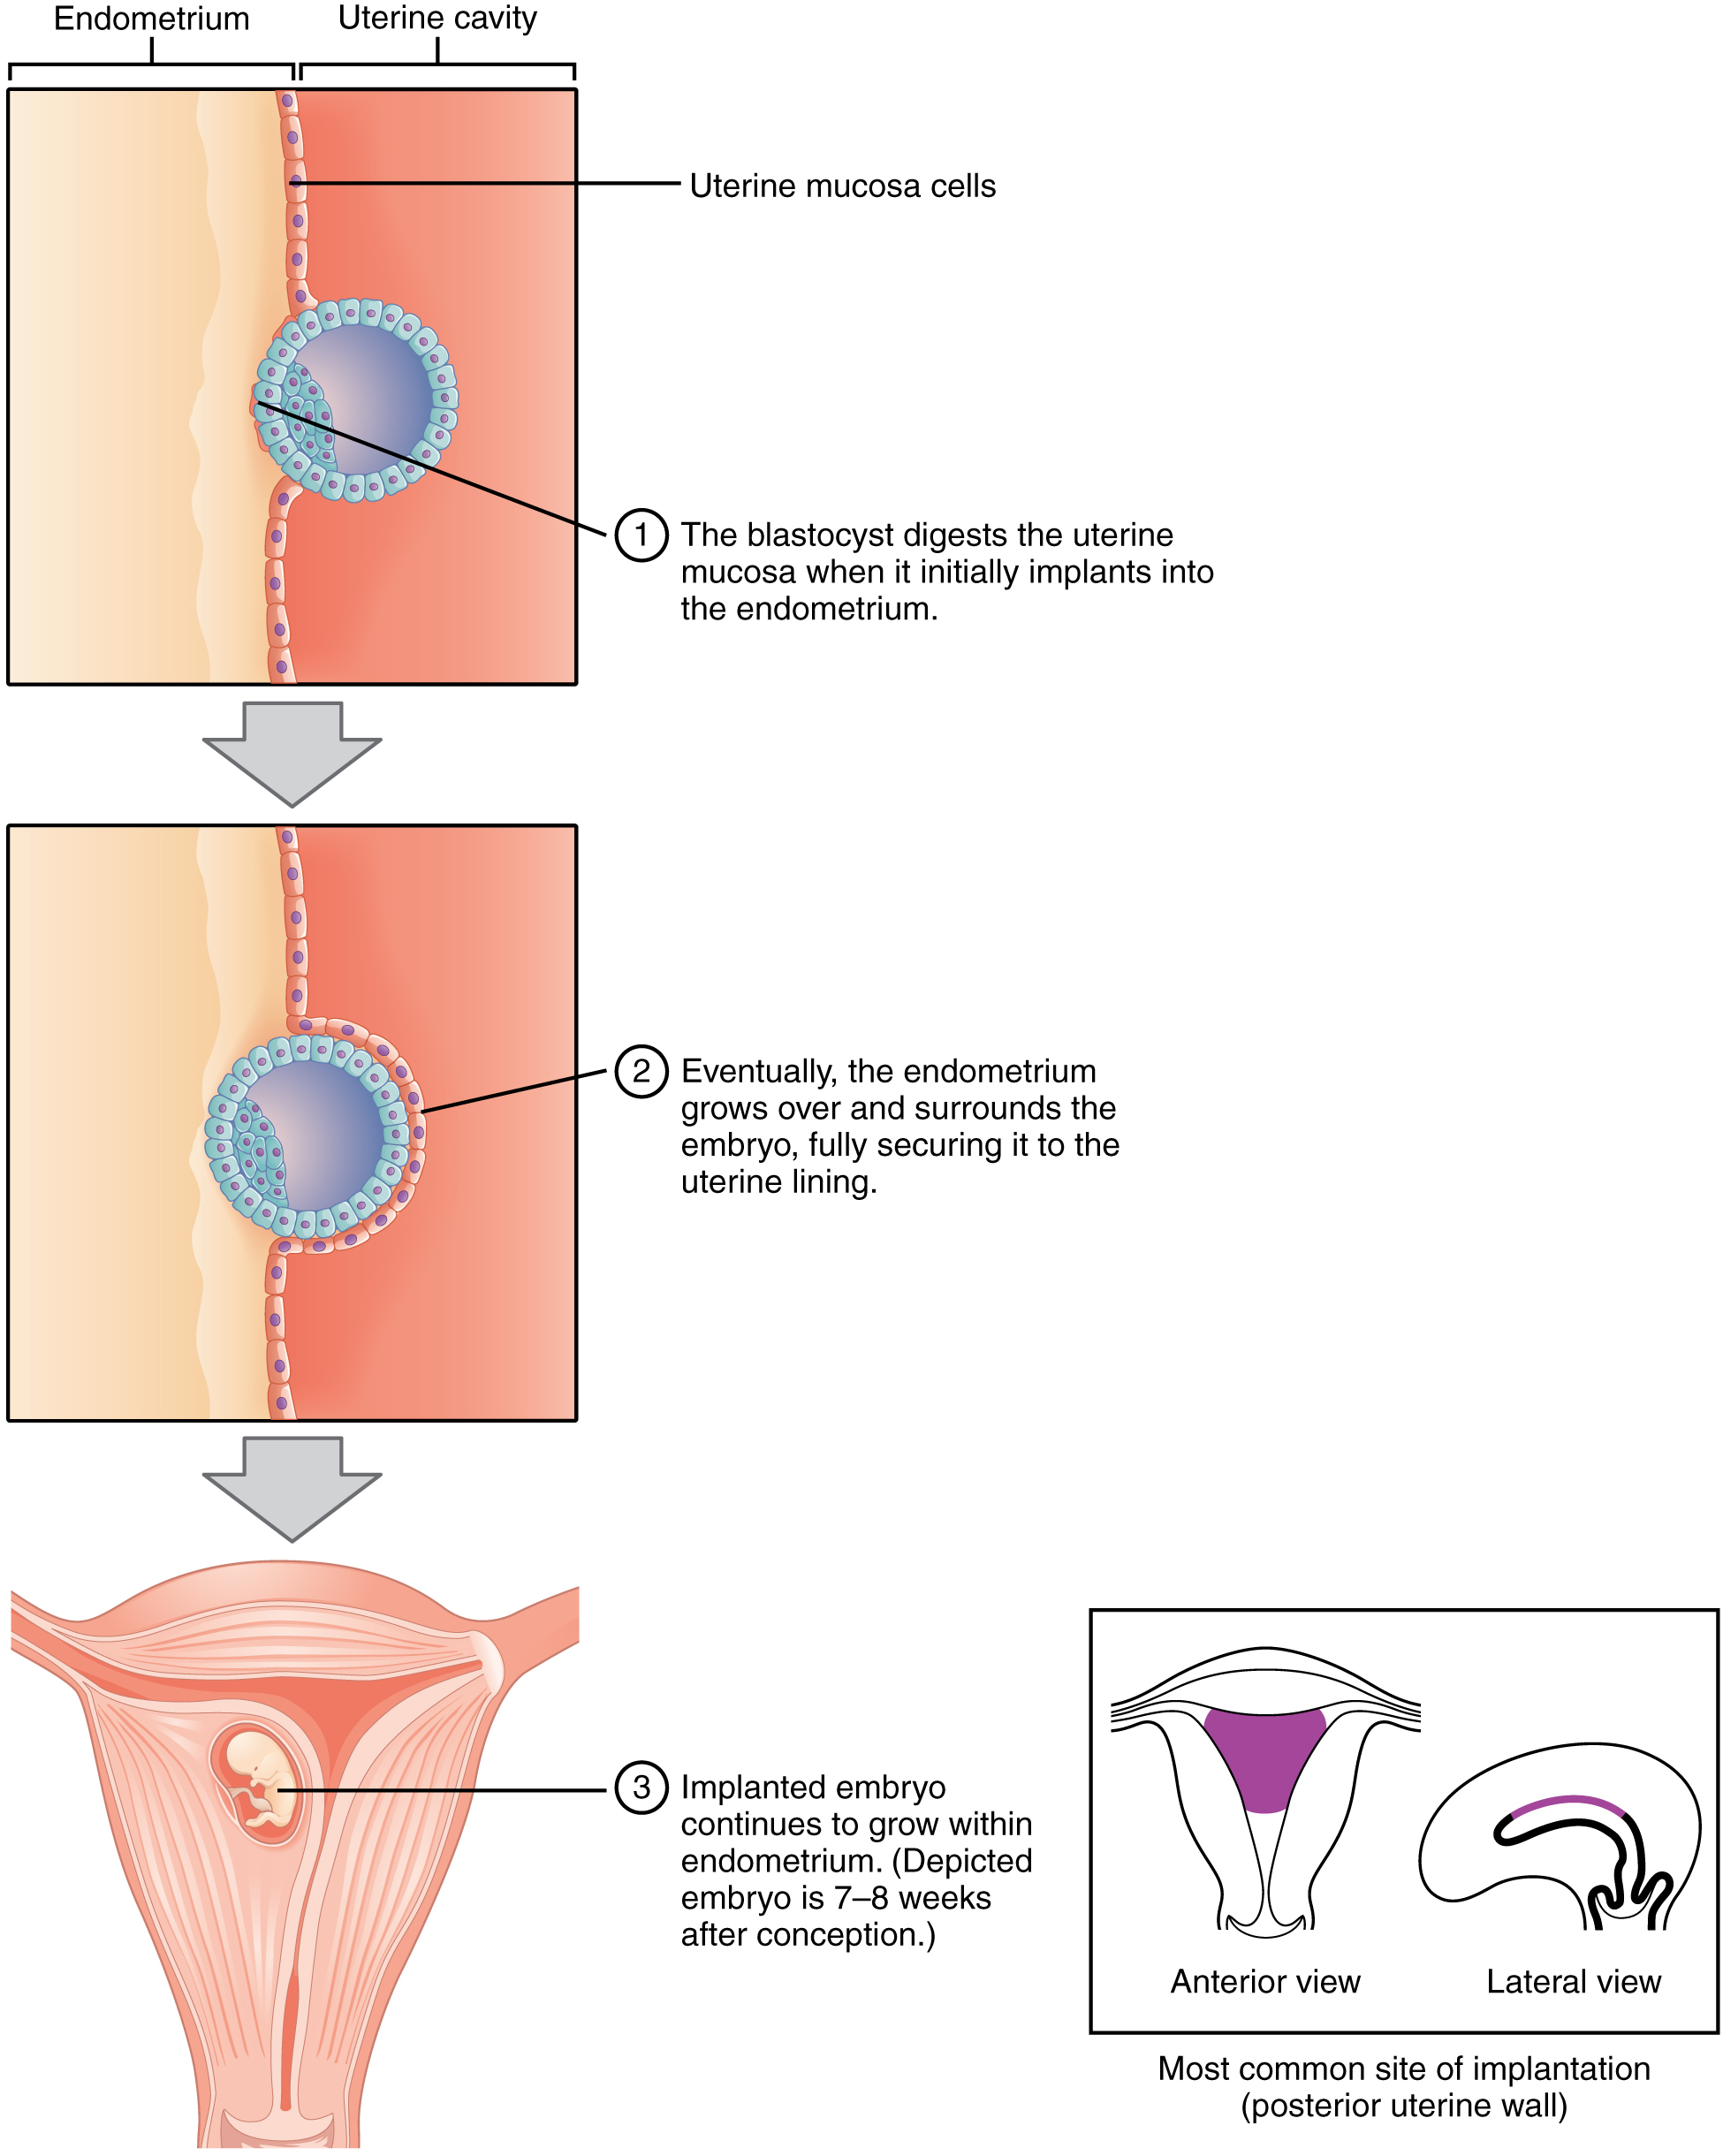 This figure shows the different steps during implantation. The top panel shows how the blastocyst burrows into the endometrium. The middle panel shows the blastocyst completely surrounded by the endometrium. The bottom panel shows the implanted embryo growing in the uterus.